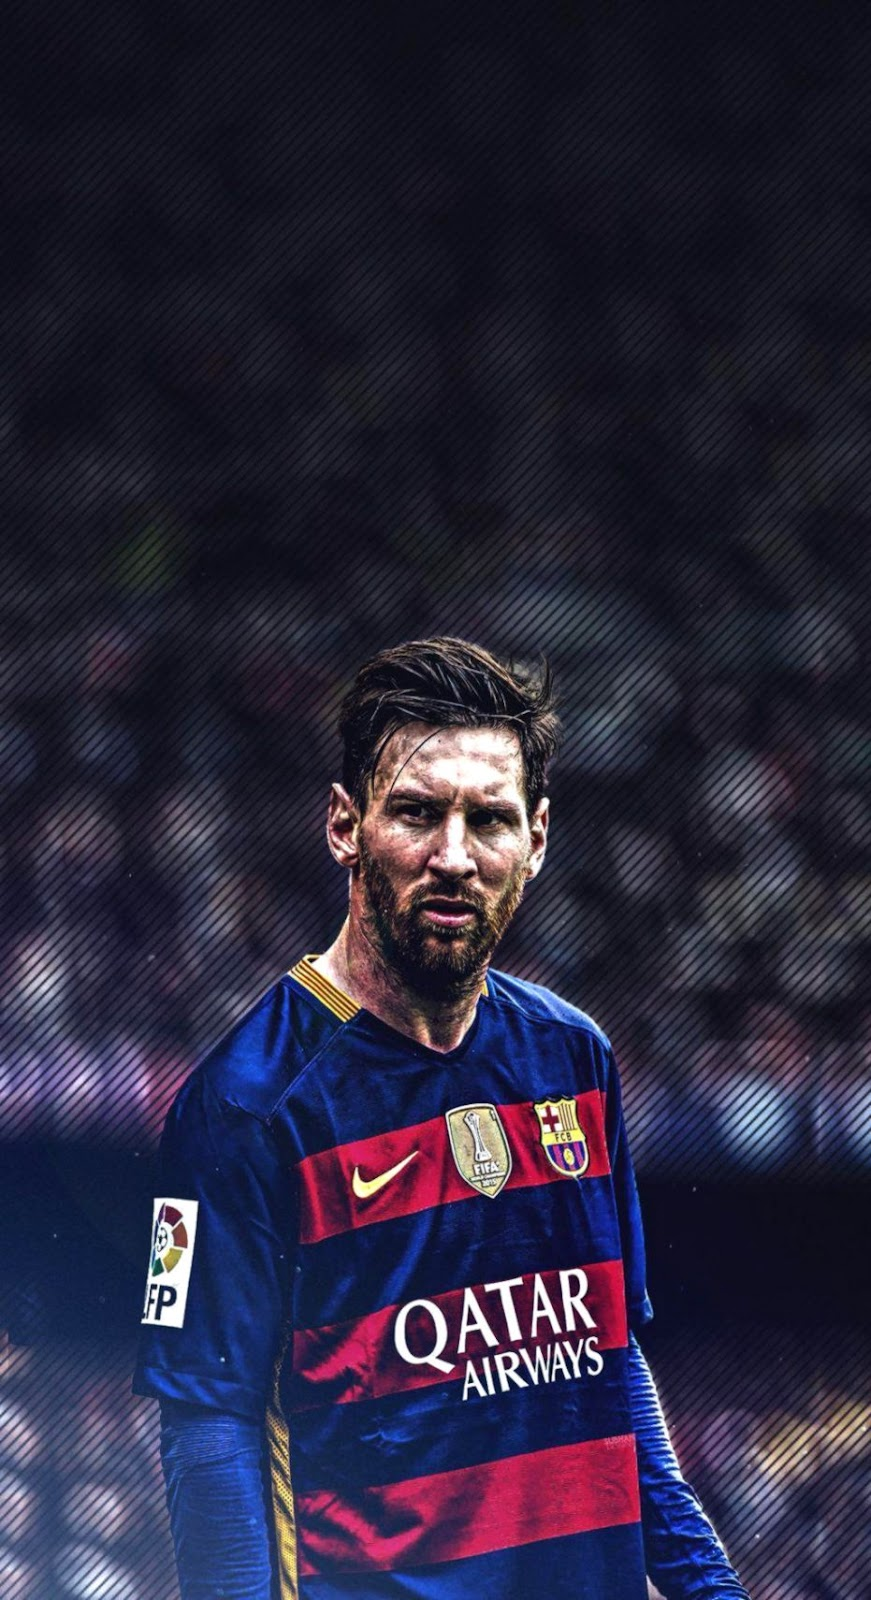 Lionel Messi Wallpaper Iphone Mobiles Wallpapers Library